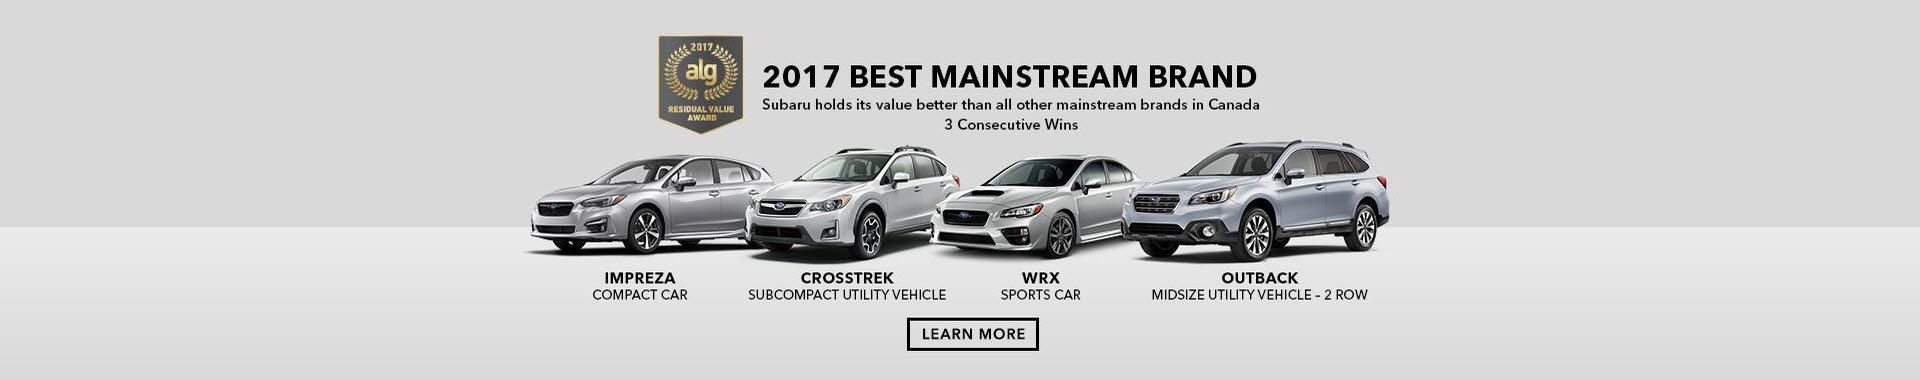 Subarus Are Made to Last. See Our ALG Award Winning Models.